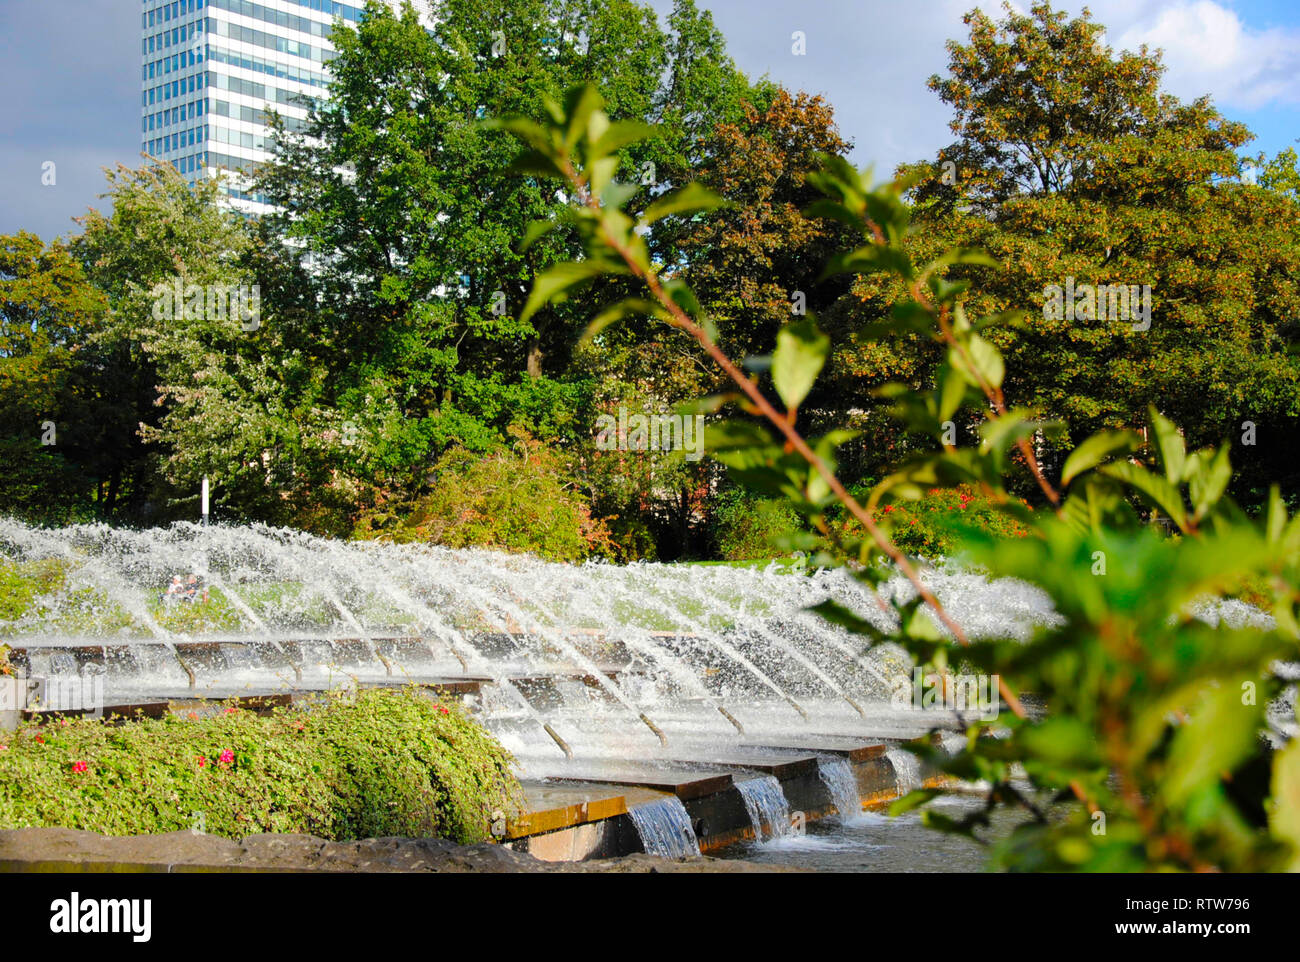 splashing water out of a fountain in the famous 'Planten un Blomen'-Park in Hamburg in Germany - Stock Image